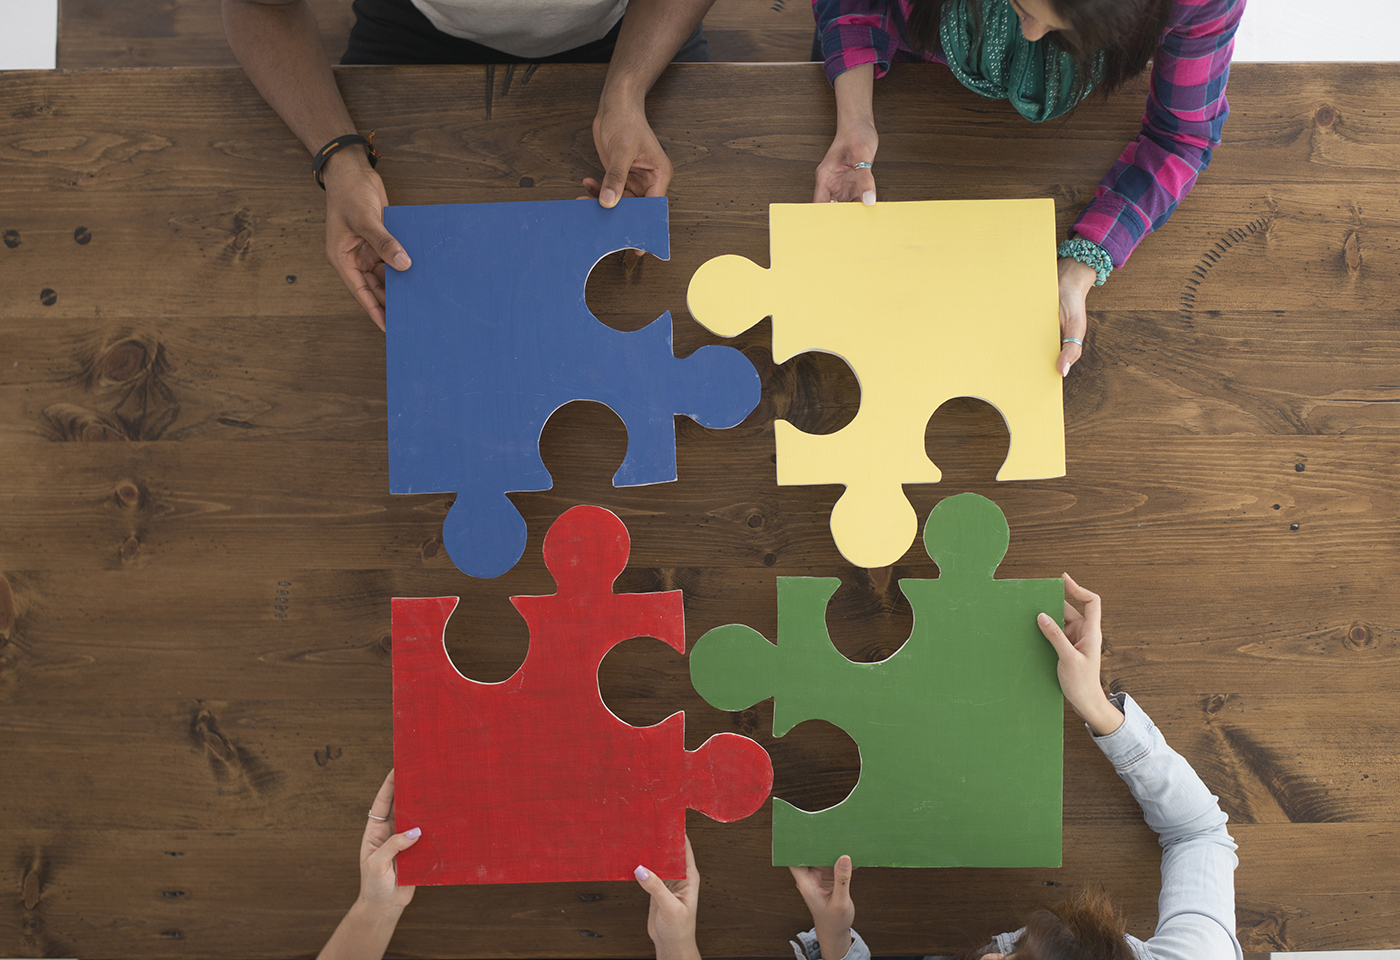 4 people connecting puzzle pieces